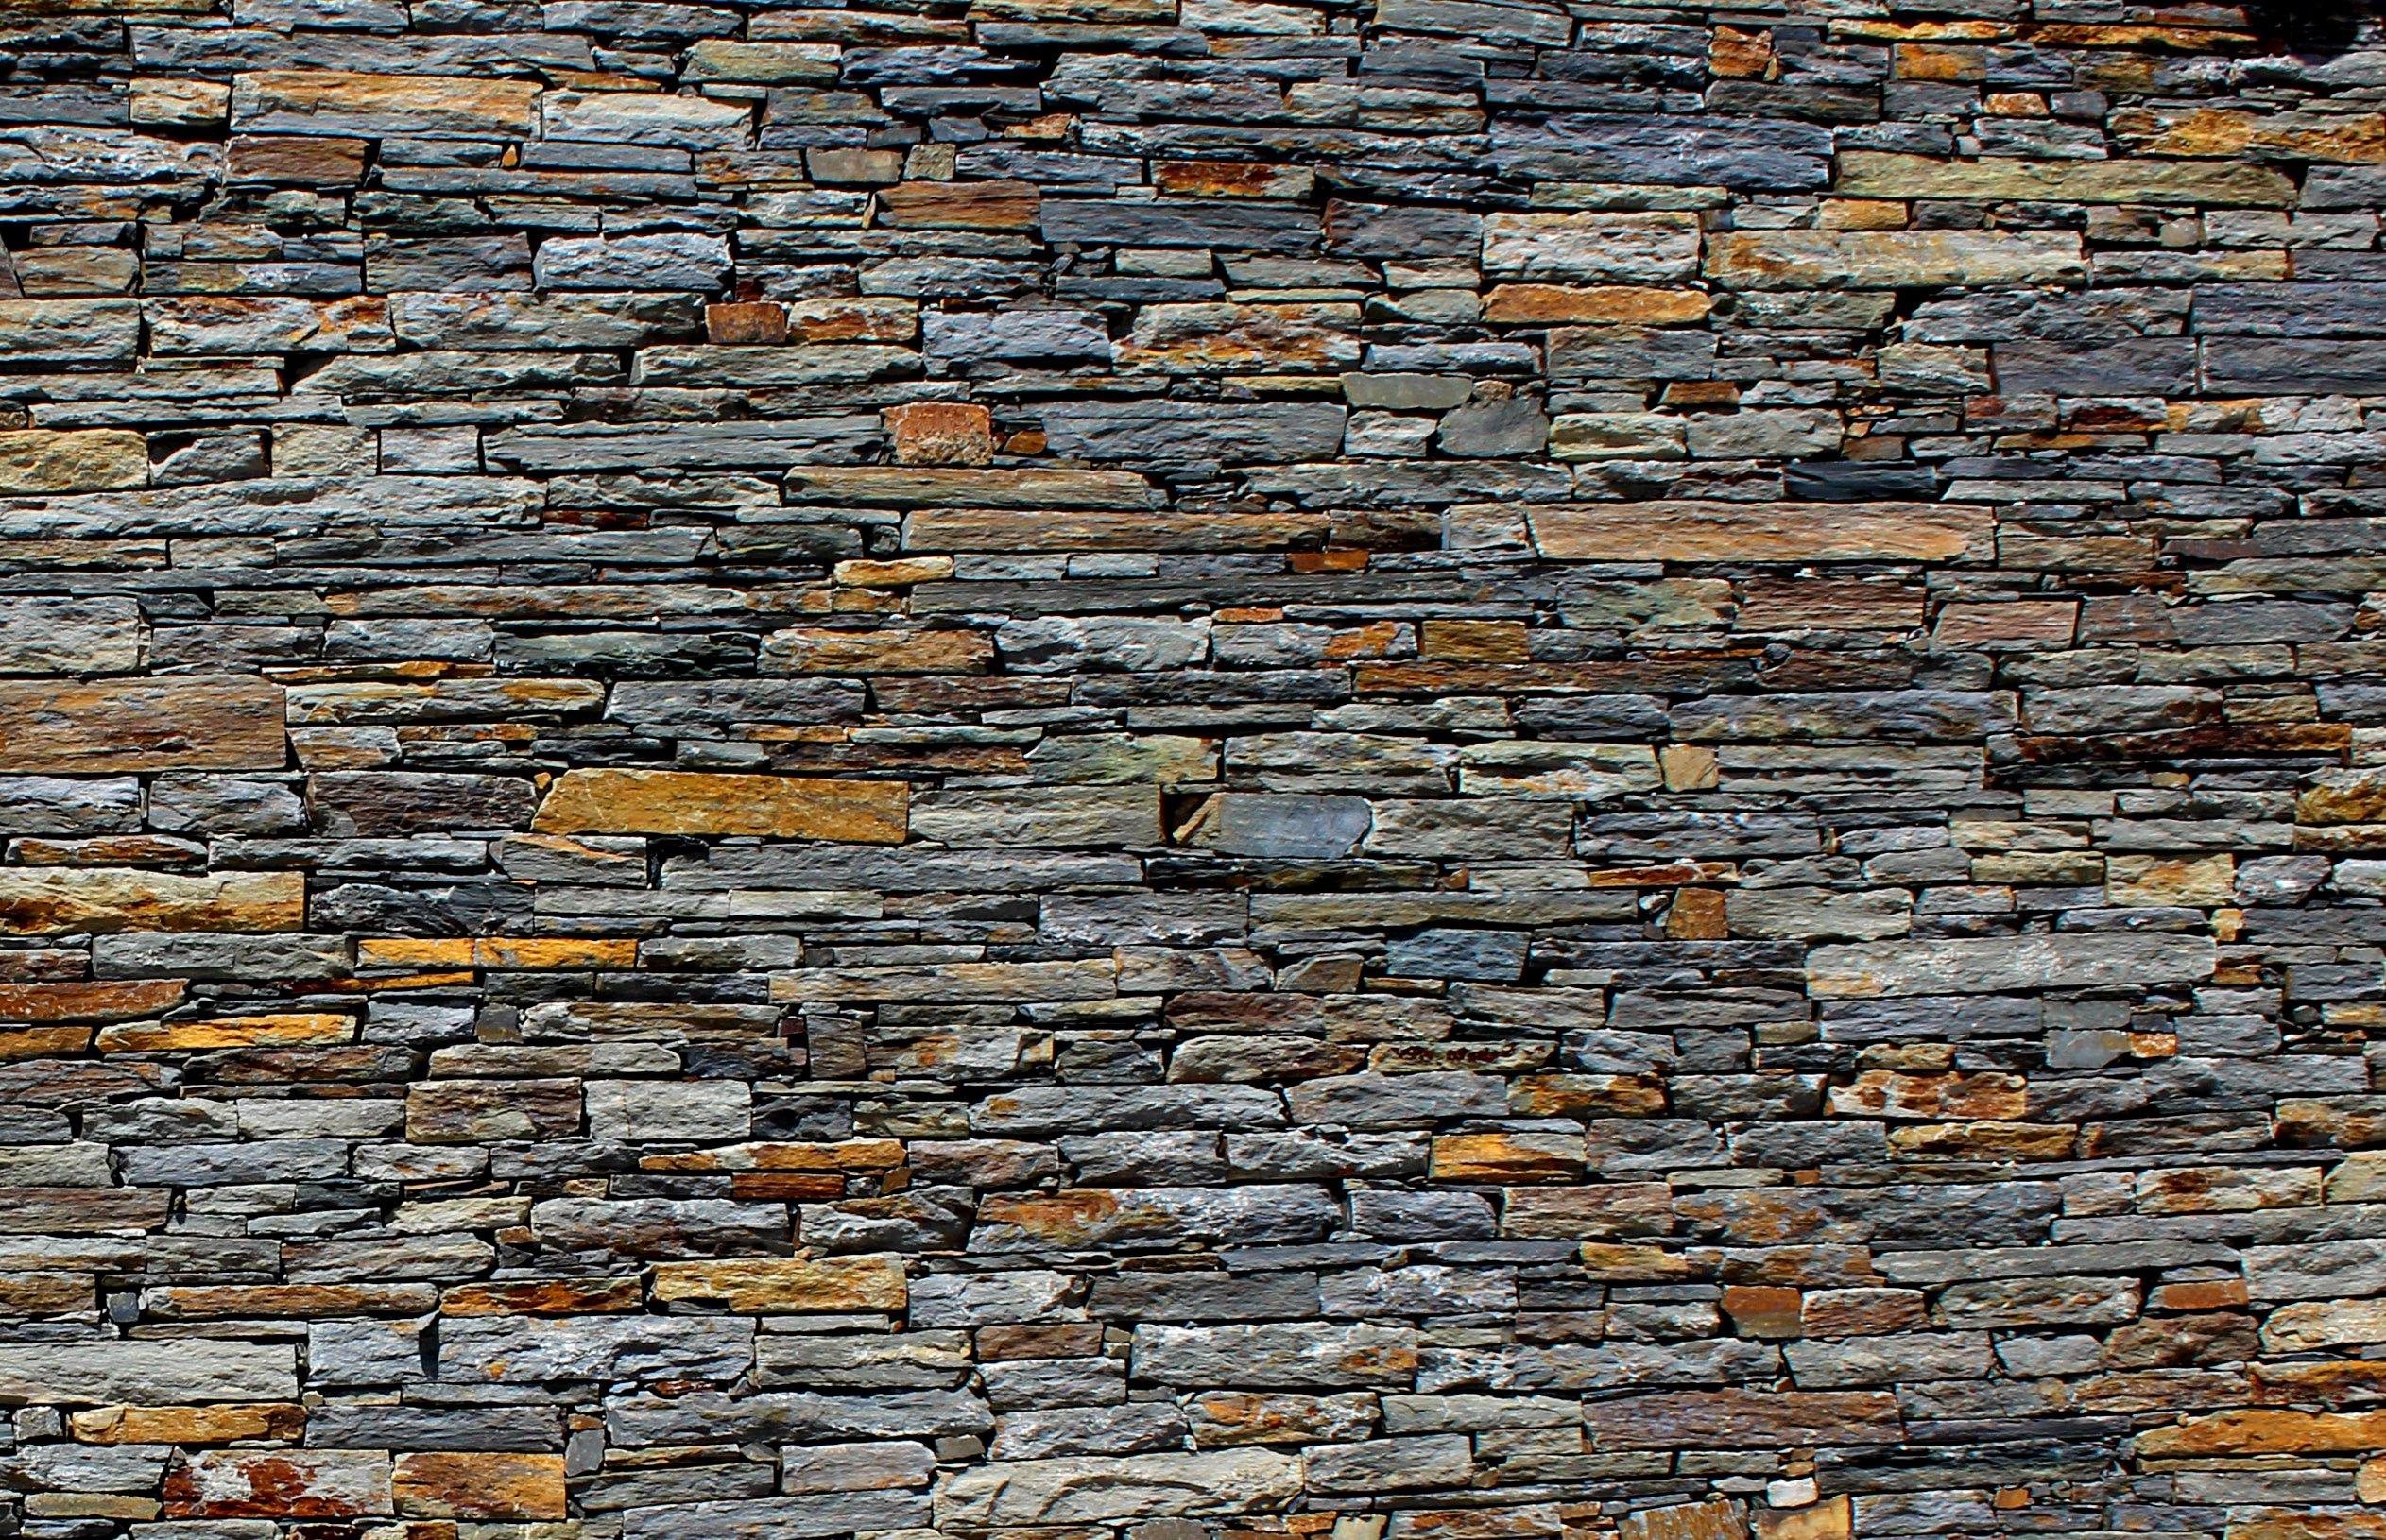 Stone Wall - Stone Texture - Schist - Background, Stone, Rock, Roof, Roofing, HQ Photo